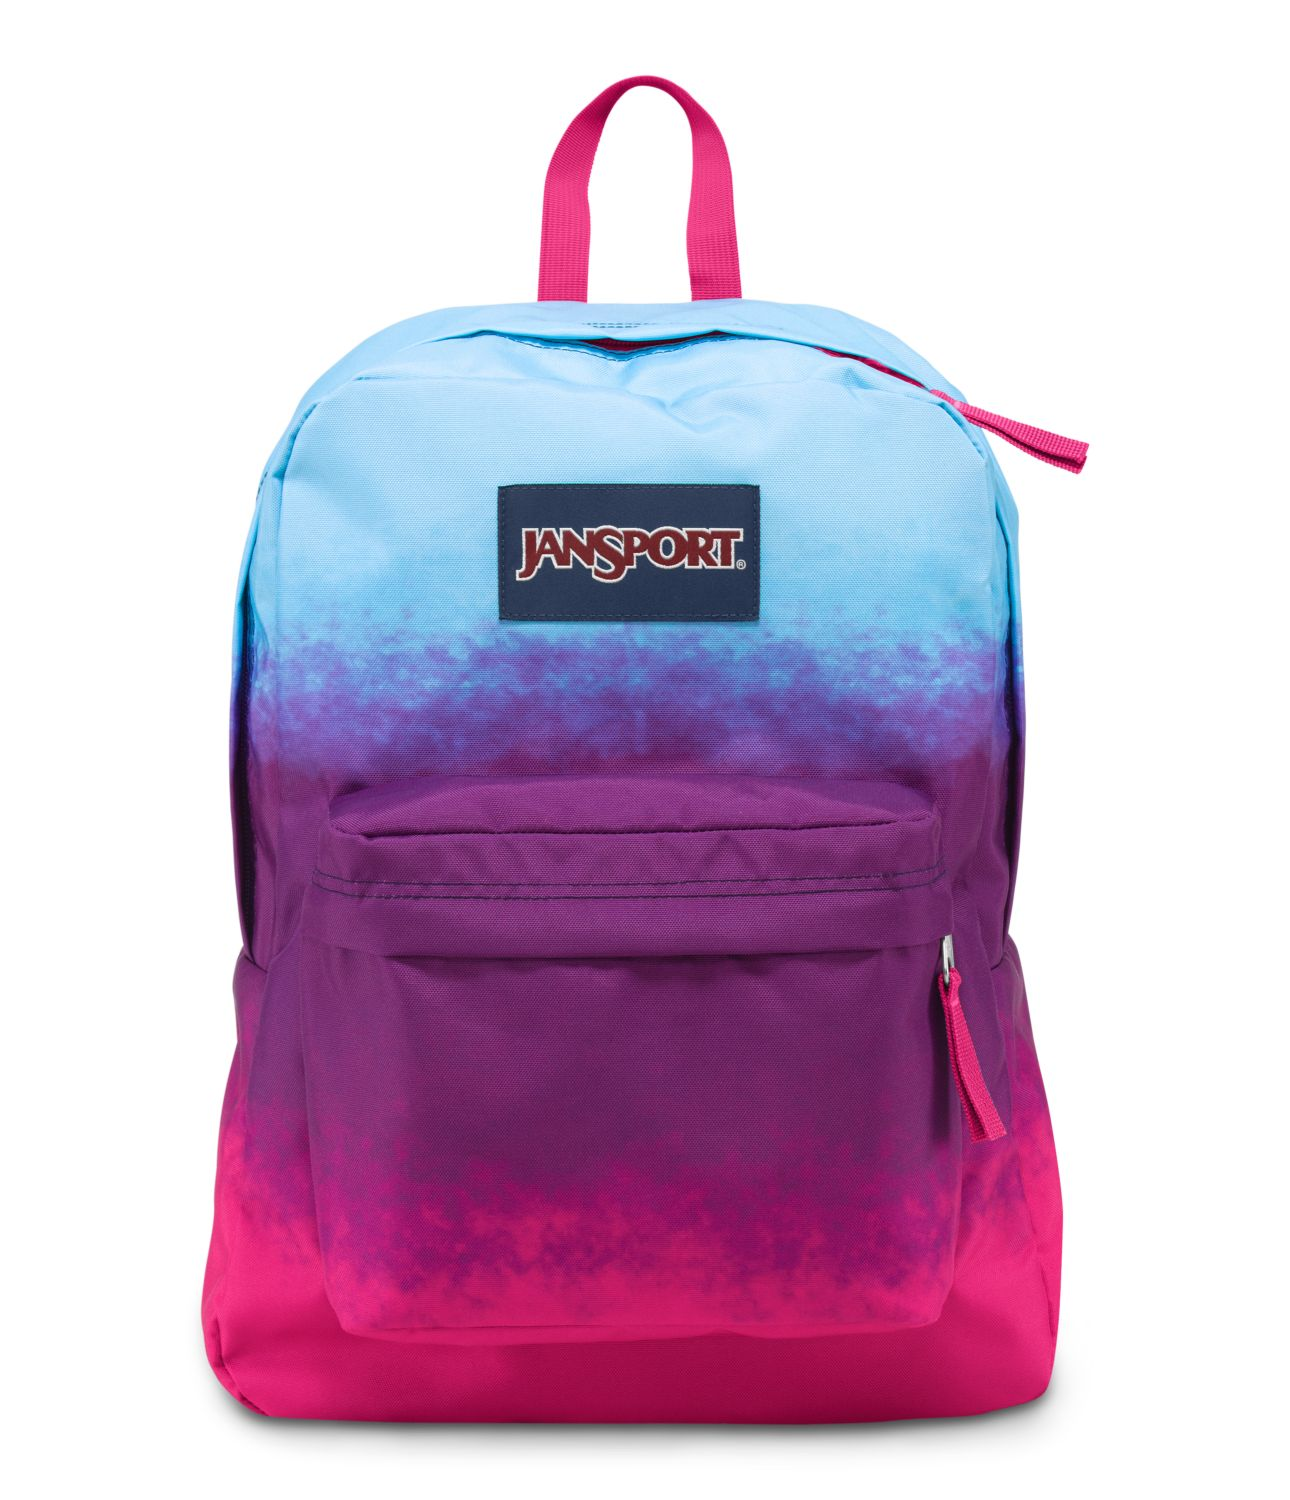 School Backpacks Jansport MR5exvqB